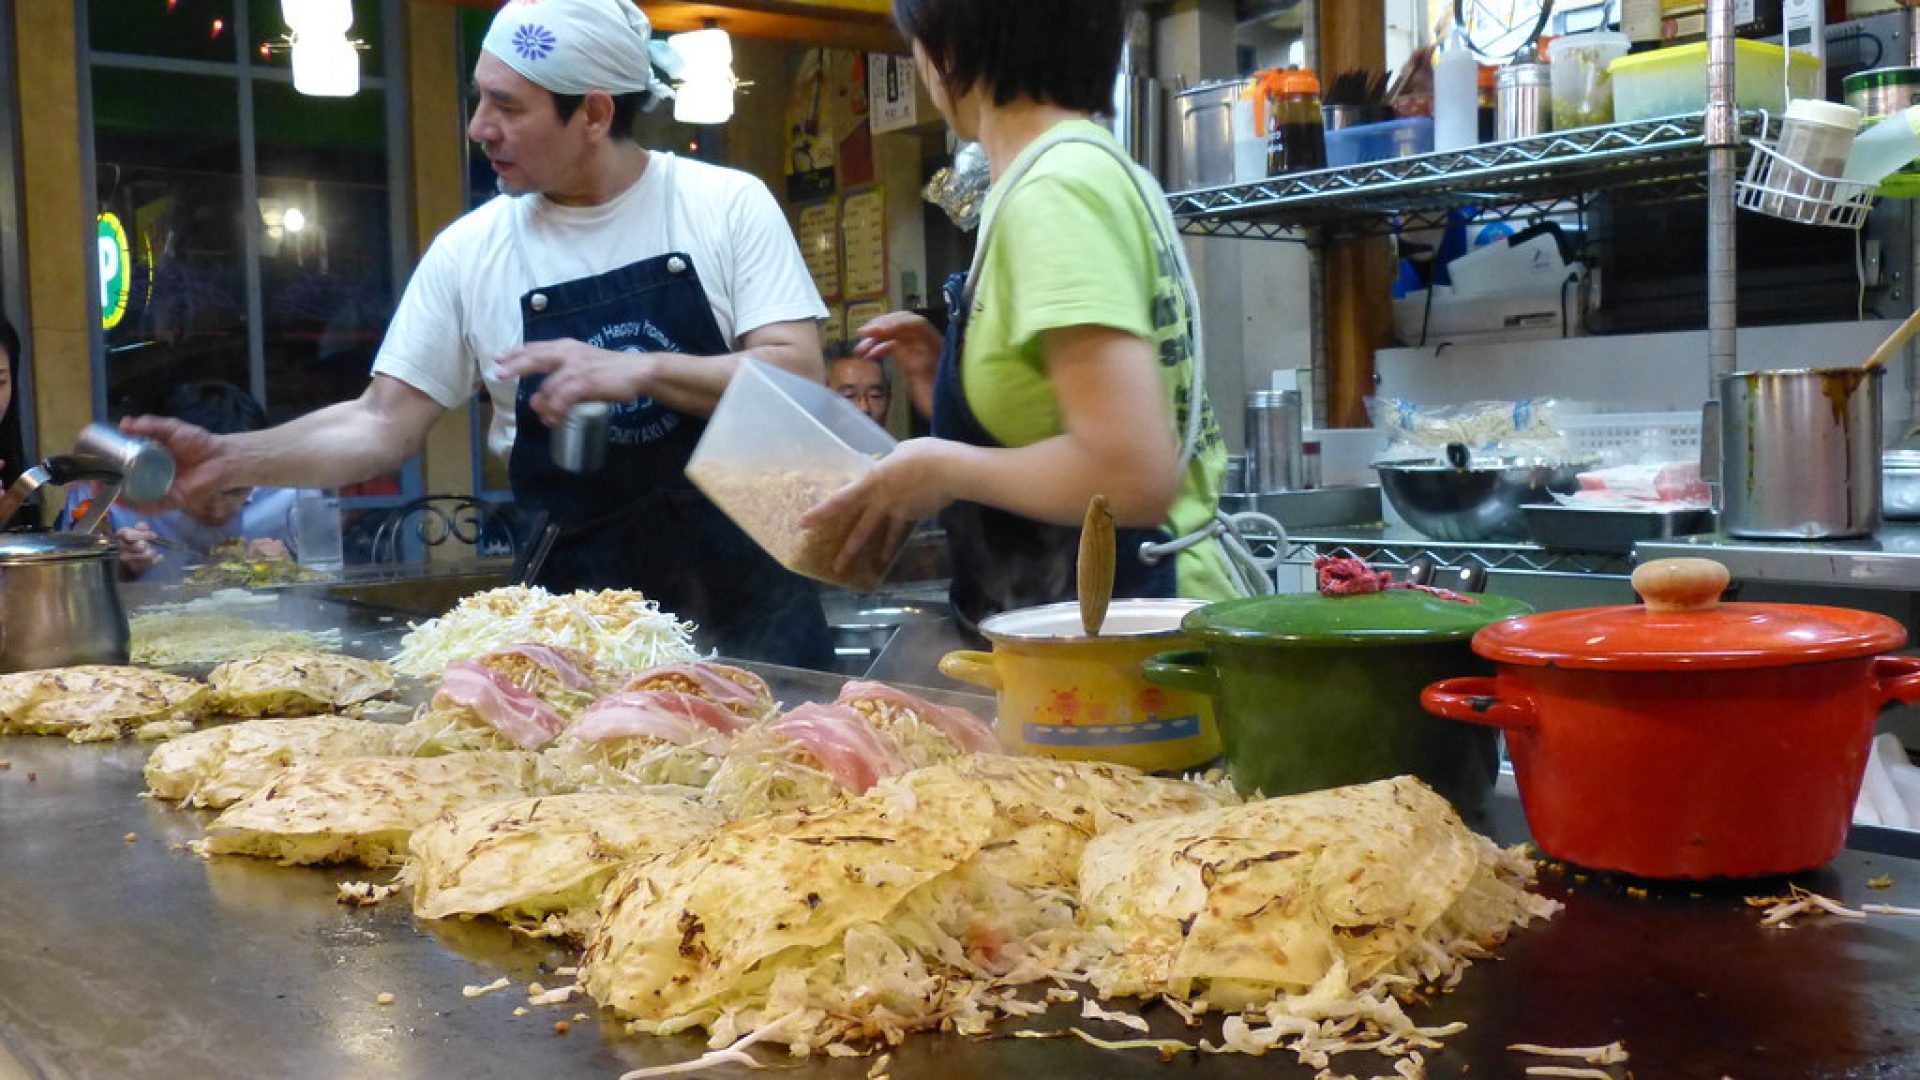 Okonomiyaki: The Authoritative Guide to Japan's Savoury Omelette